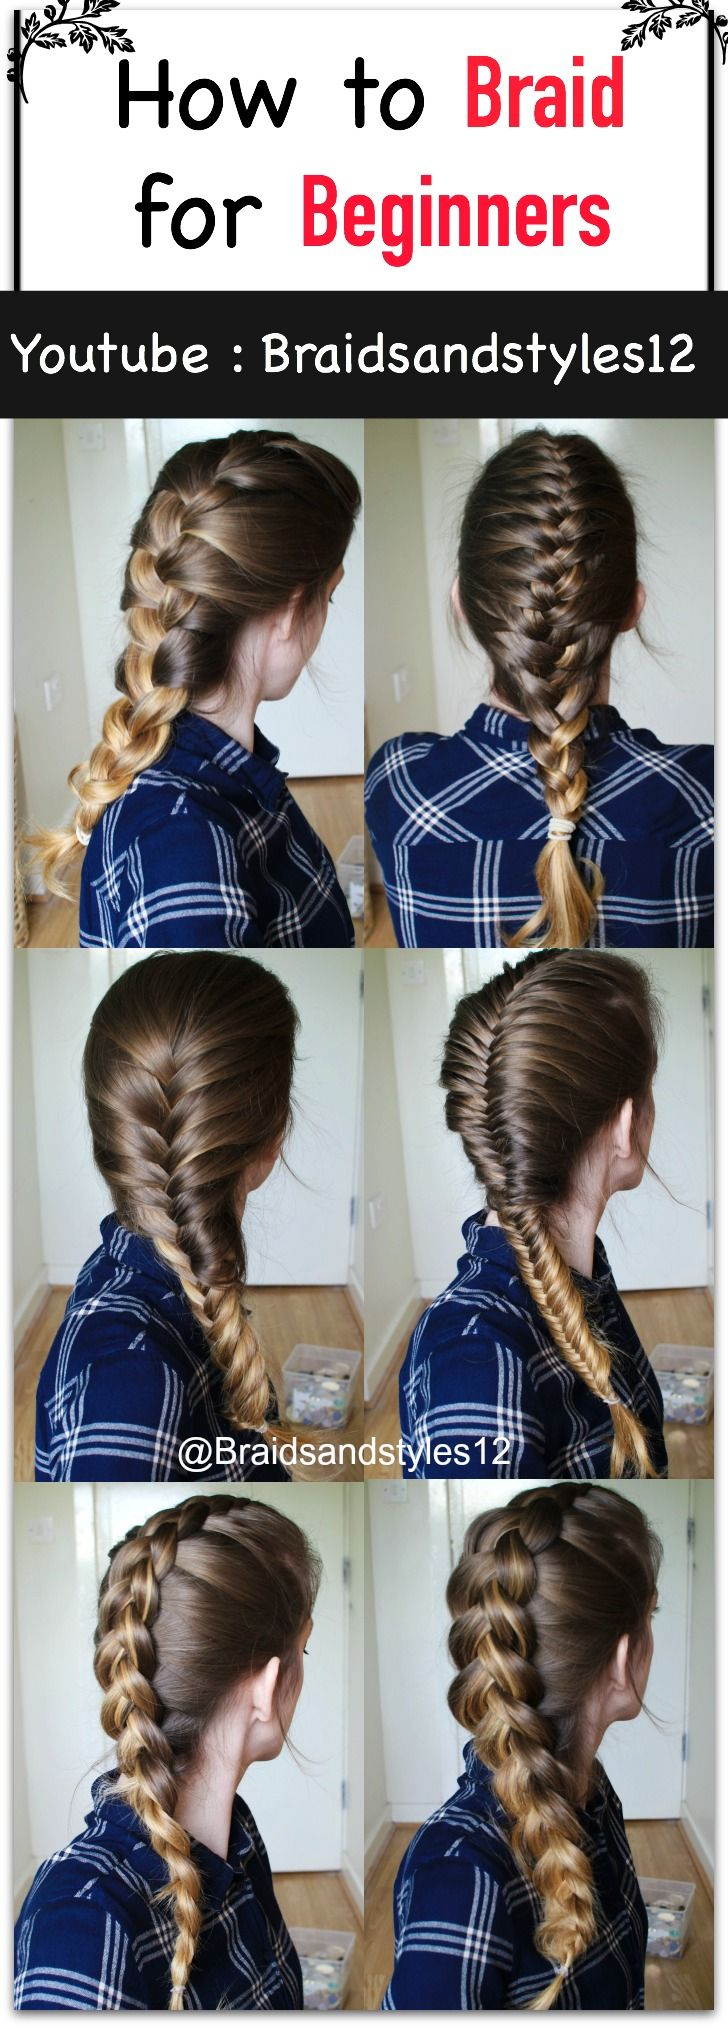 Braidsandstyles tutorials youtube and hair style